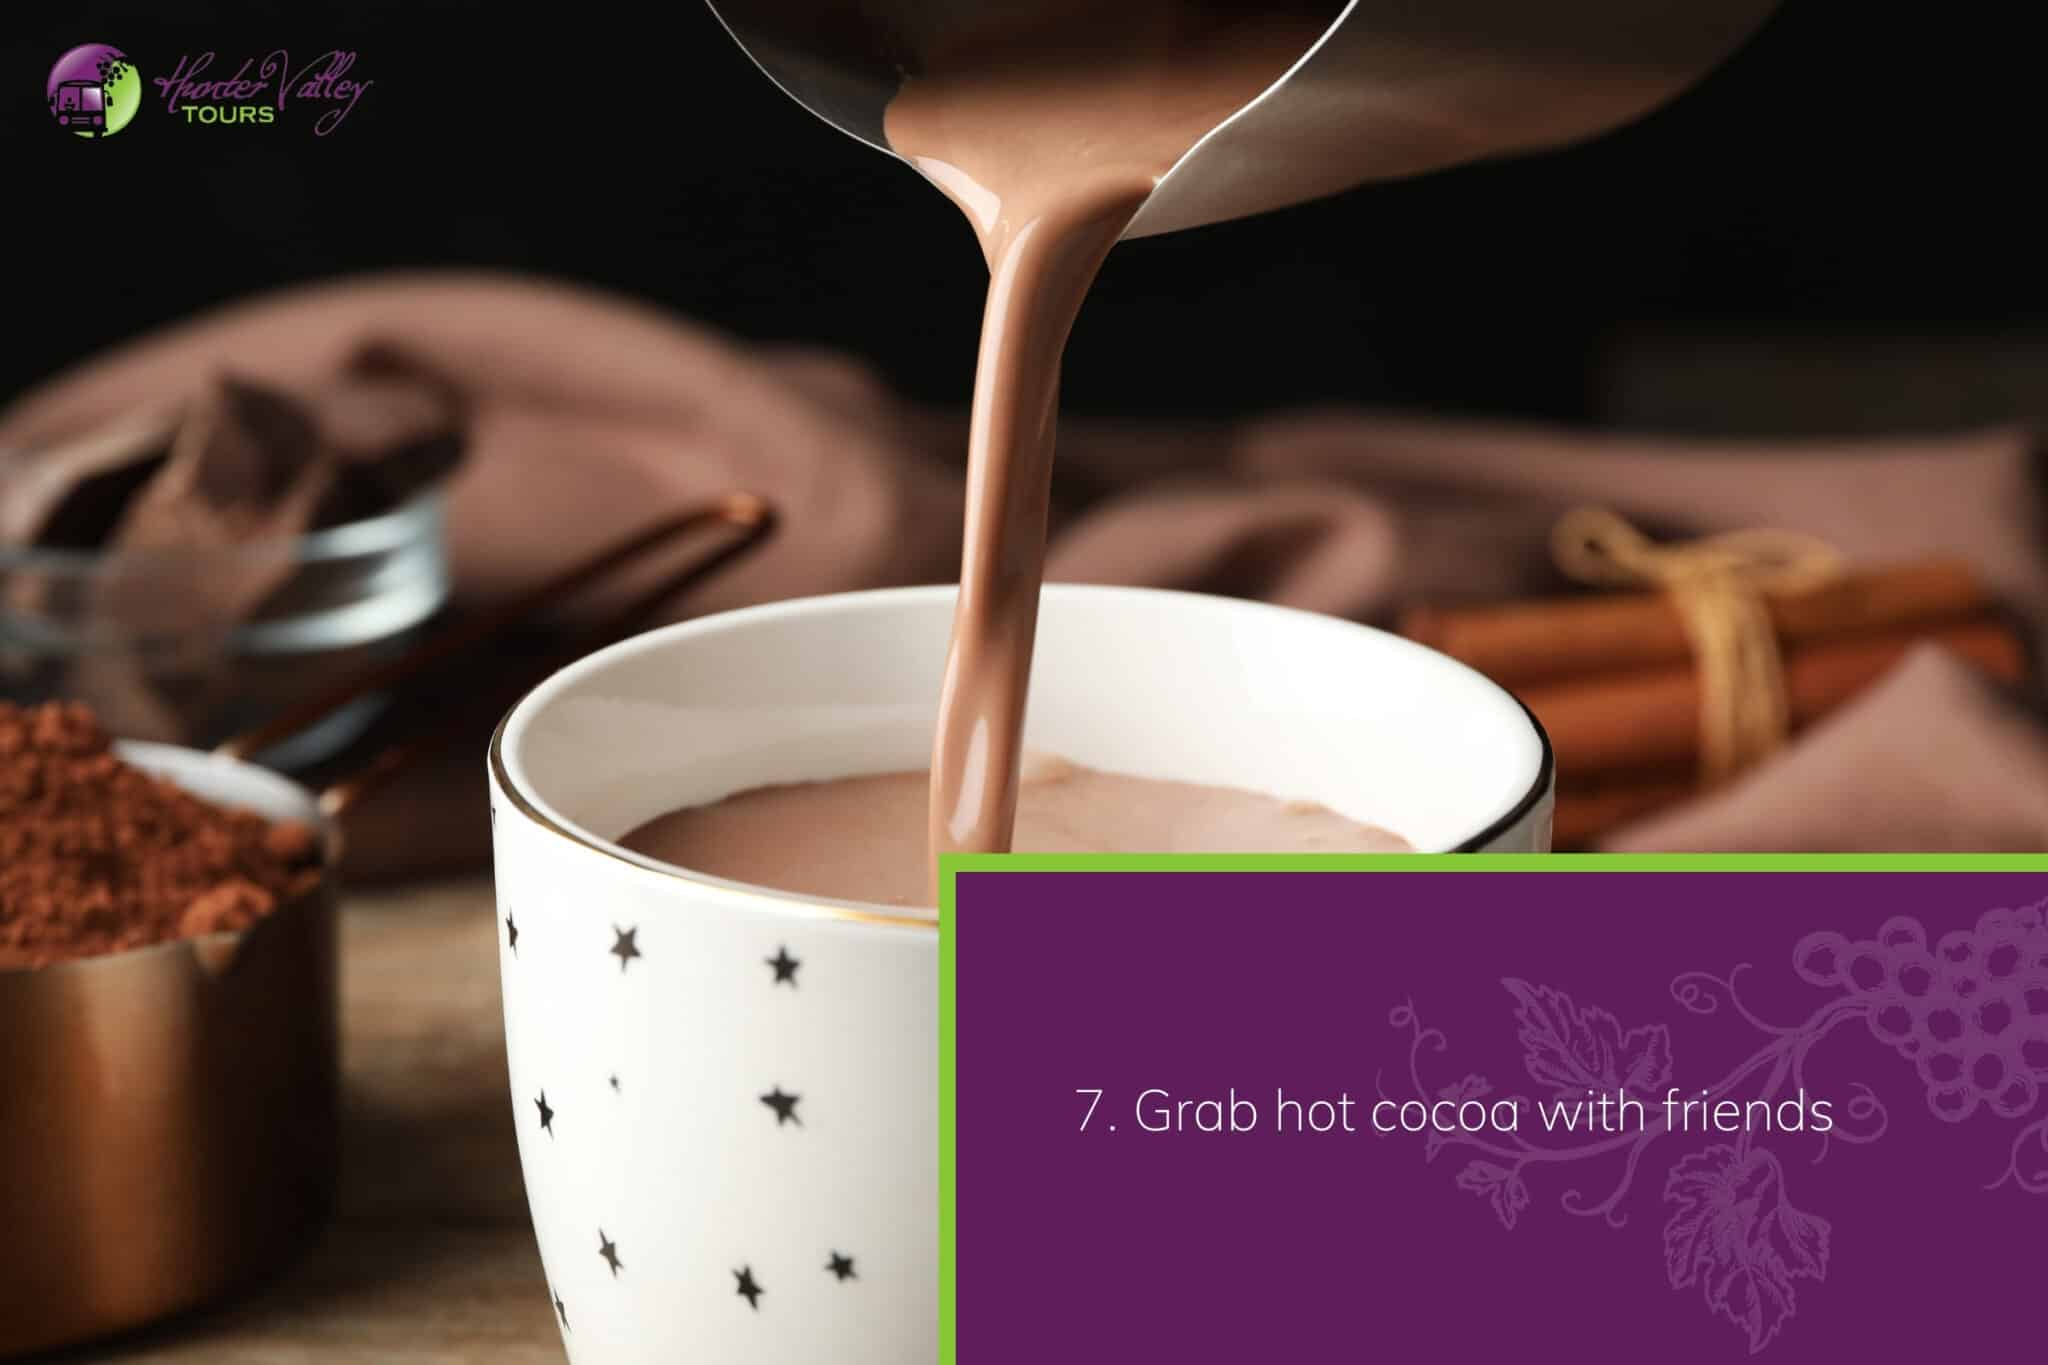 Grab hot cocoa with friends